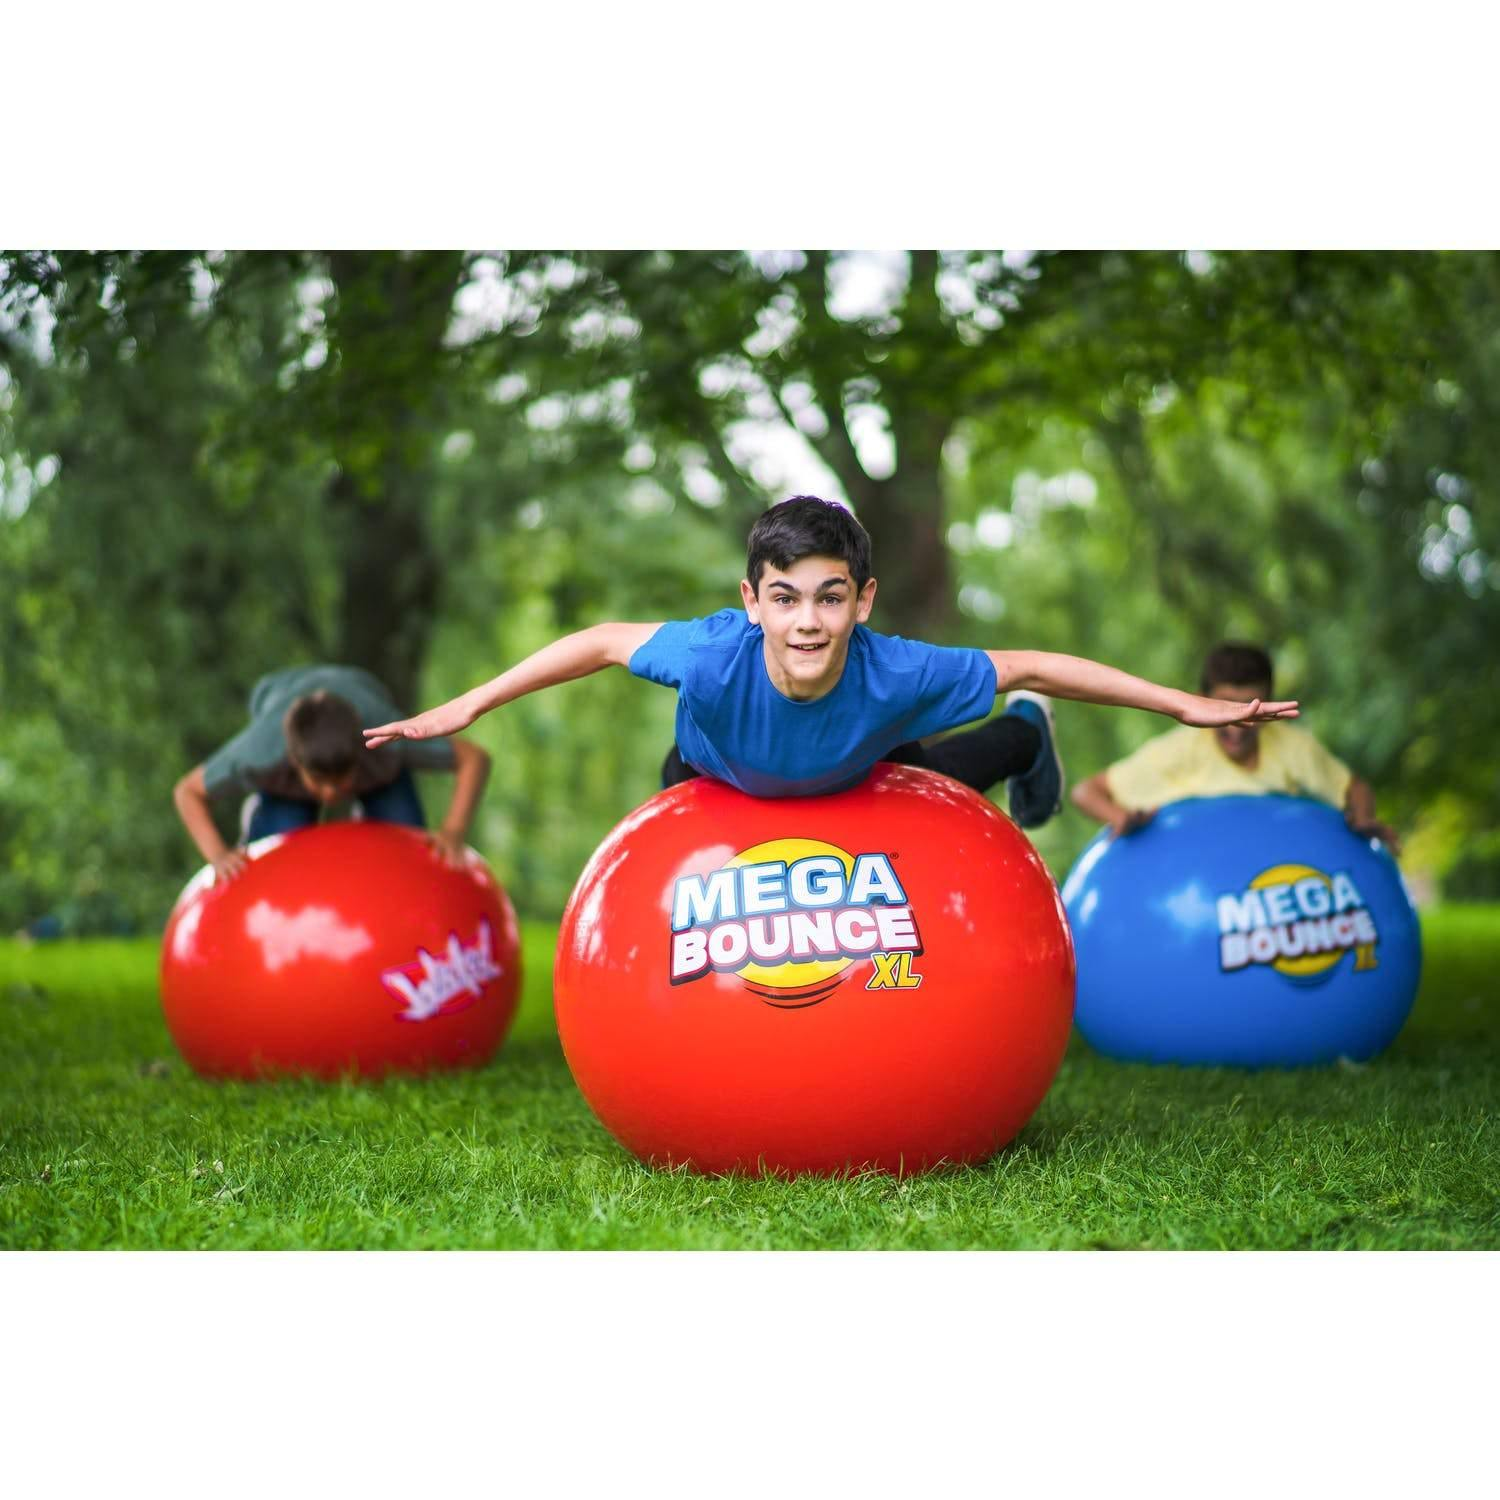 Mega Bounce XL